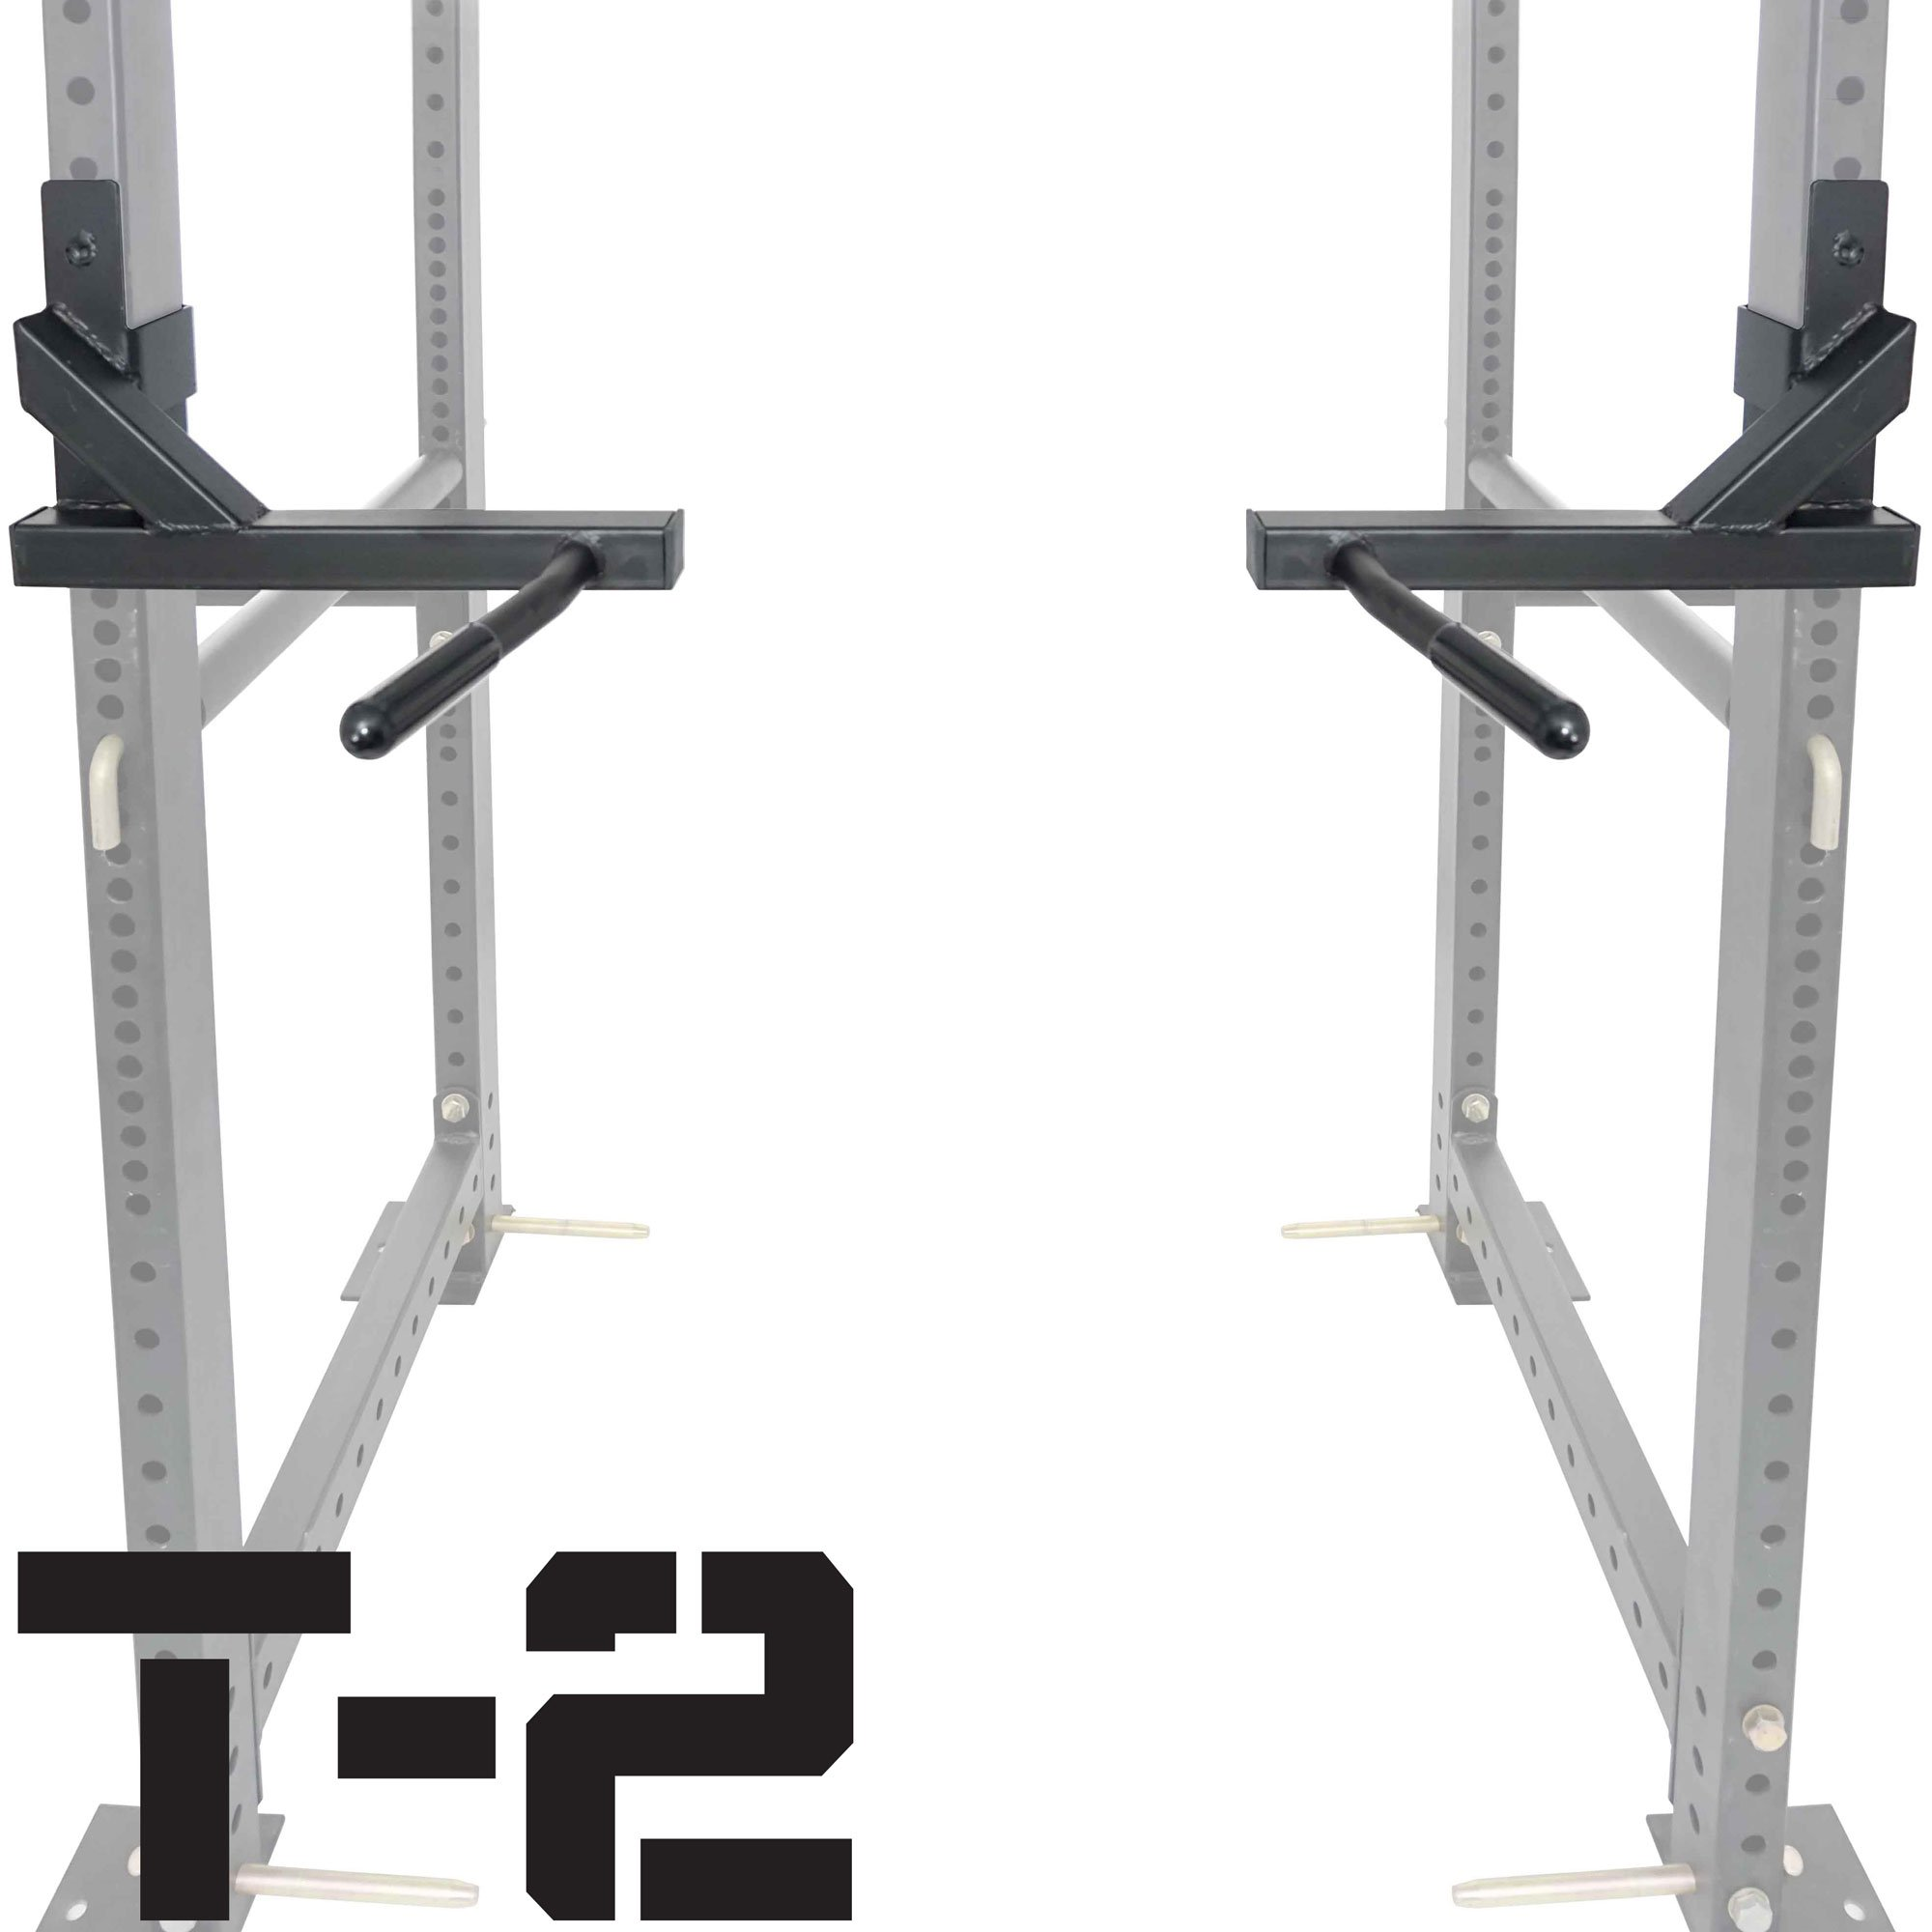 Titan T-2 Series Dip Bar Attachment for Power Rack Strength Training Workout by Titan Fitness